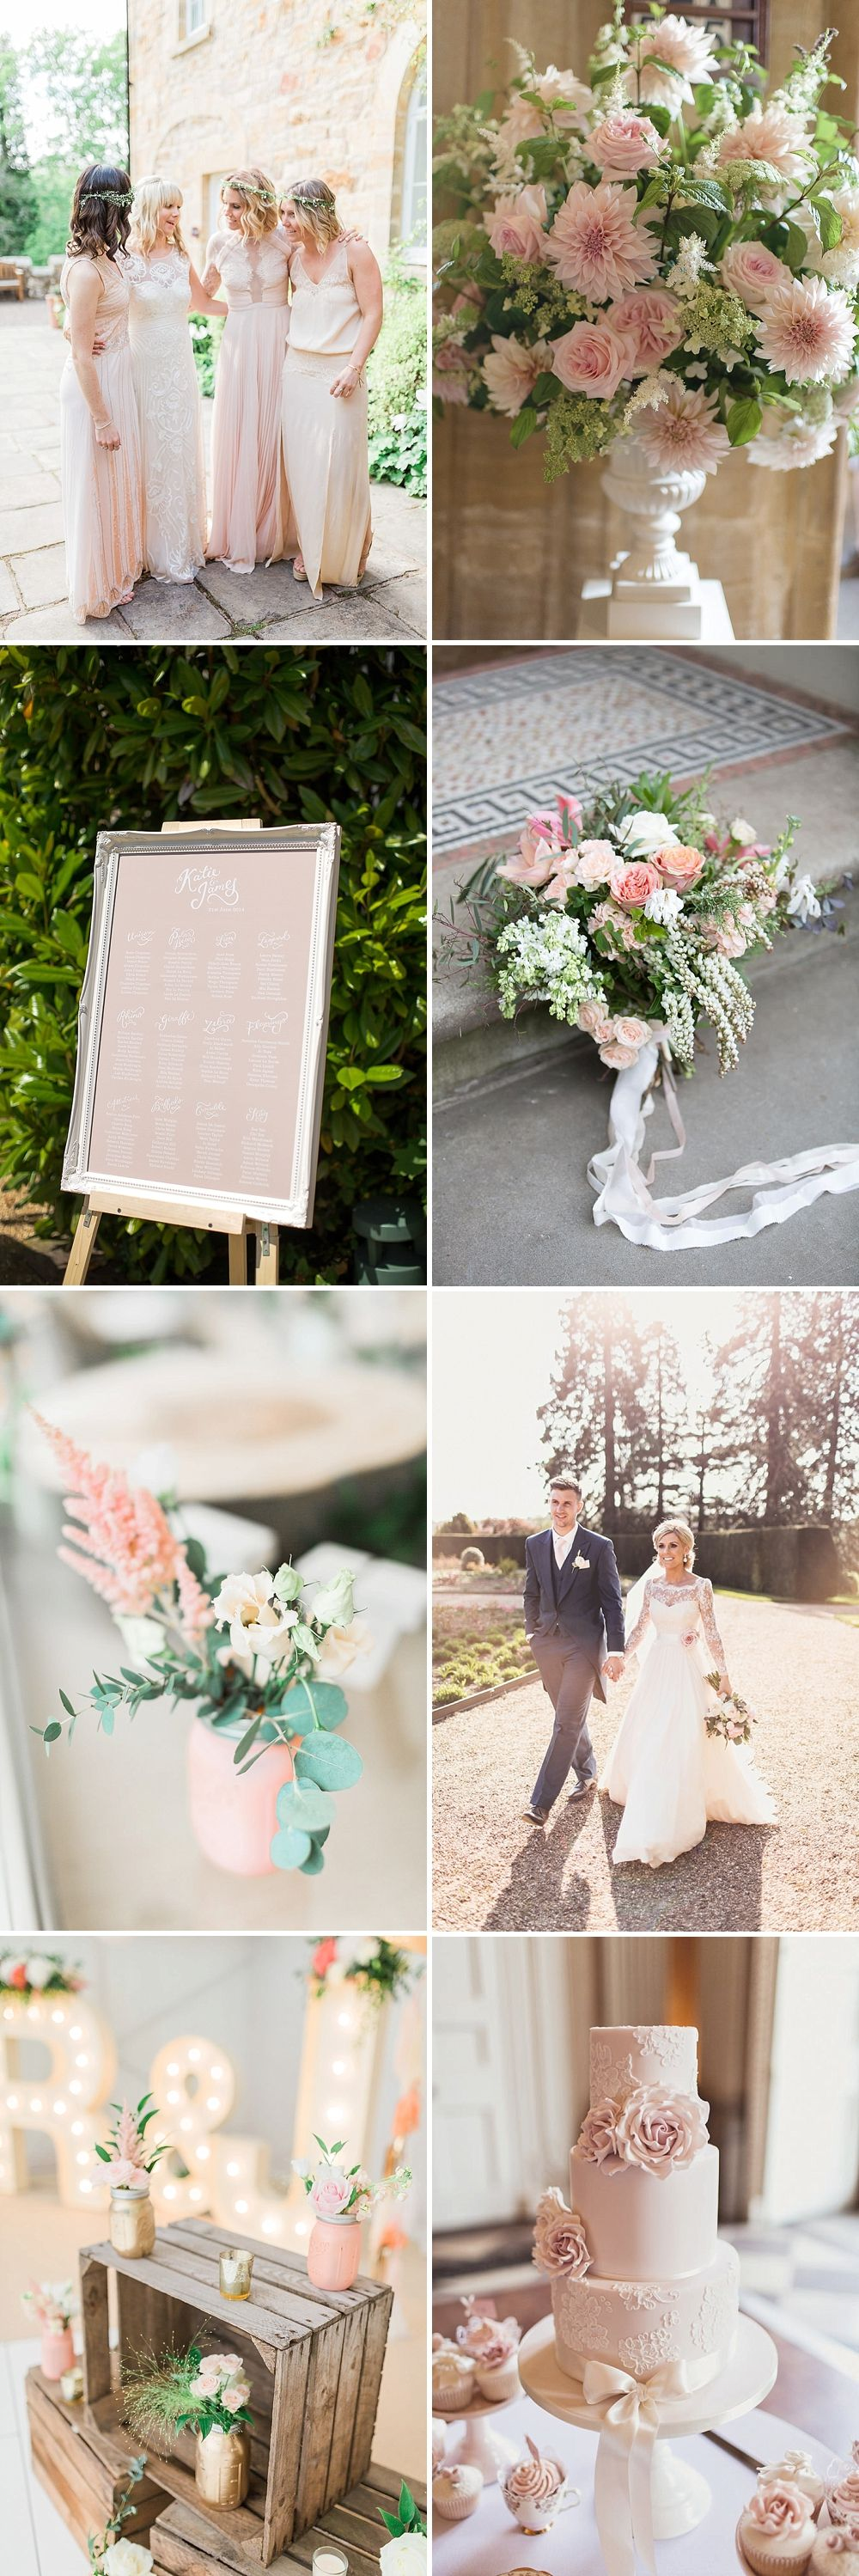 Stylish And Budget Friendly Blush Colour Theme Ideas For Your